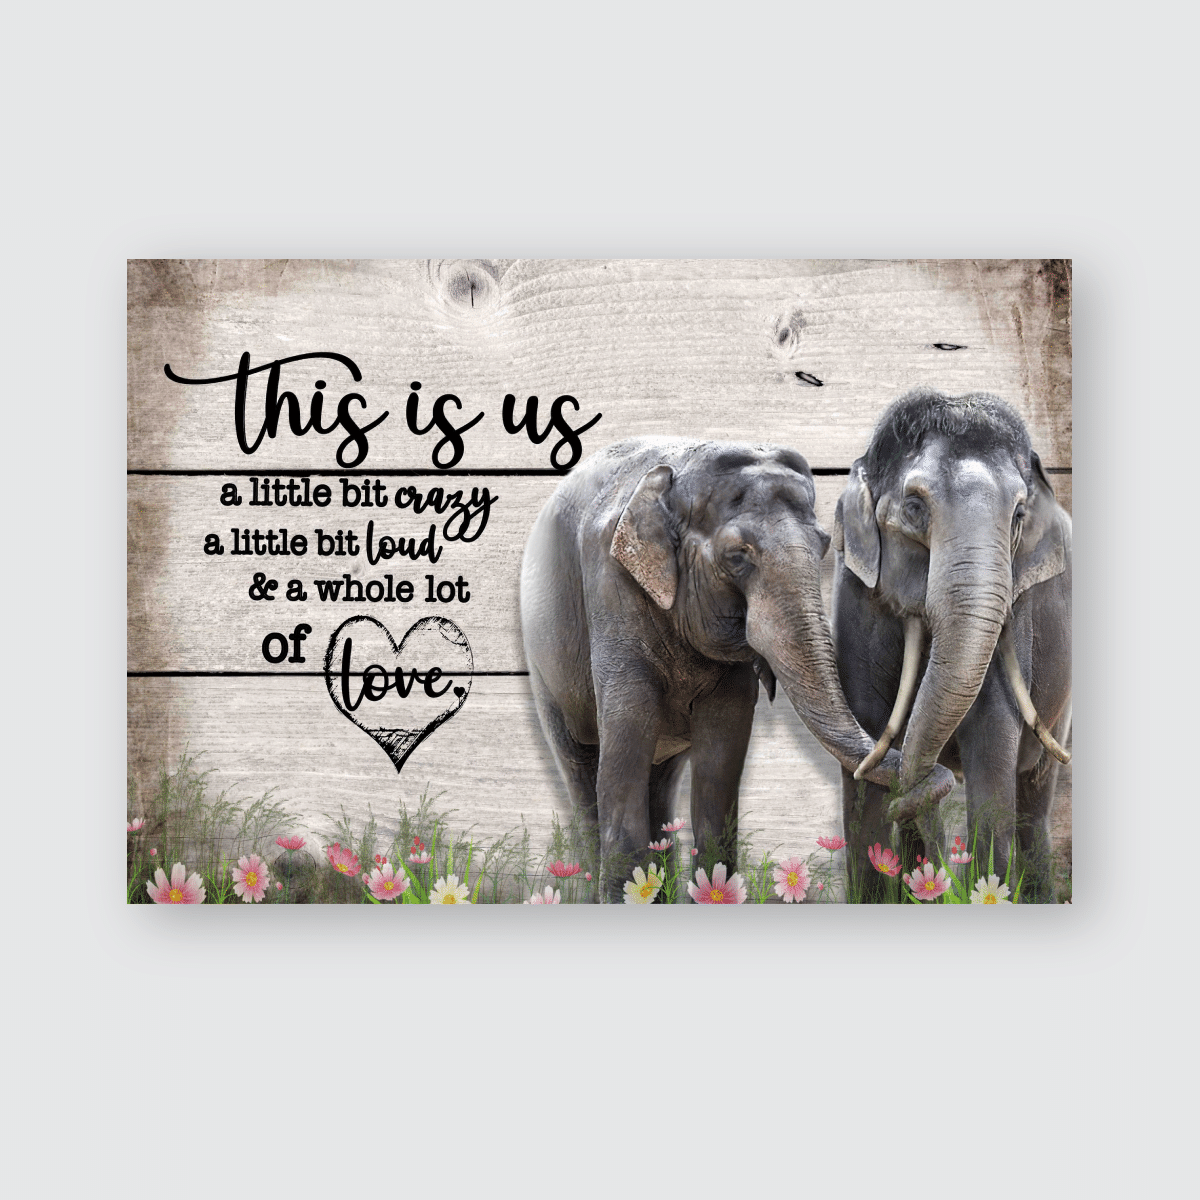 This is us -Elephant - Poster and Canvas